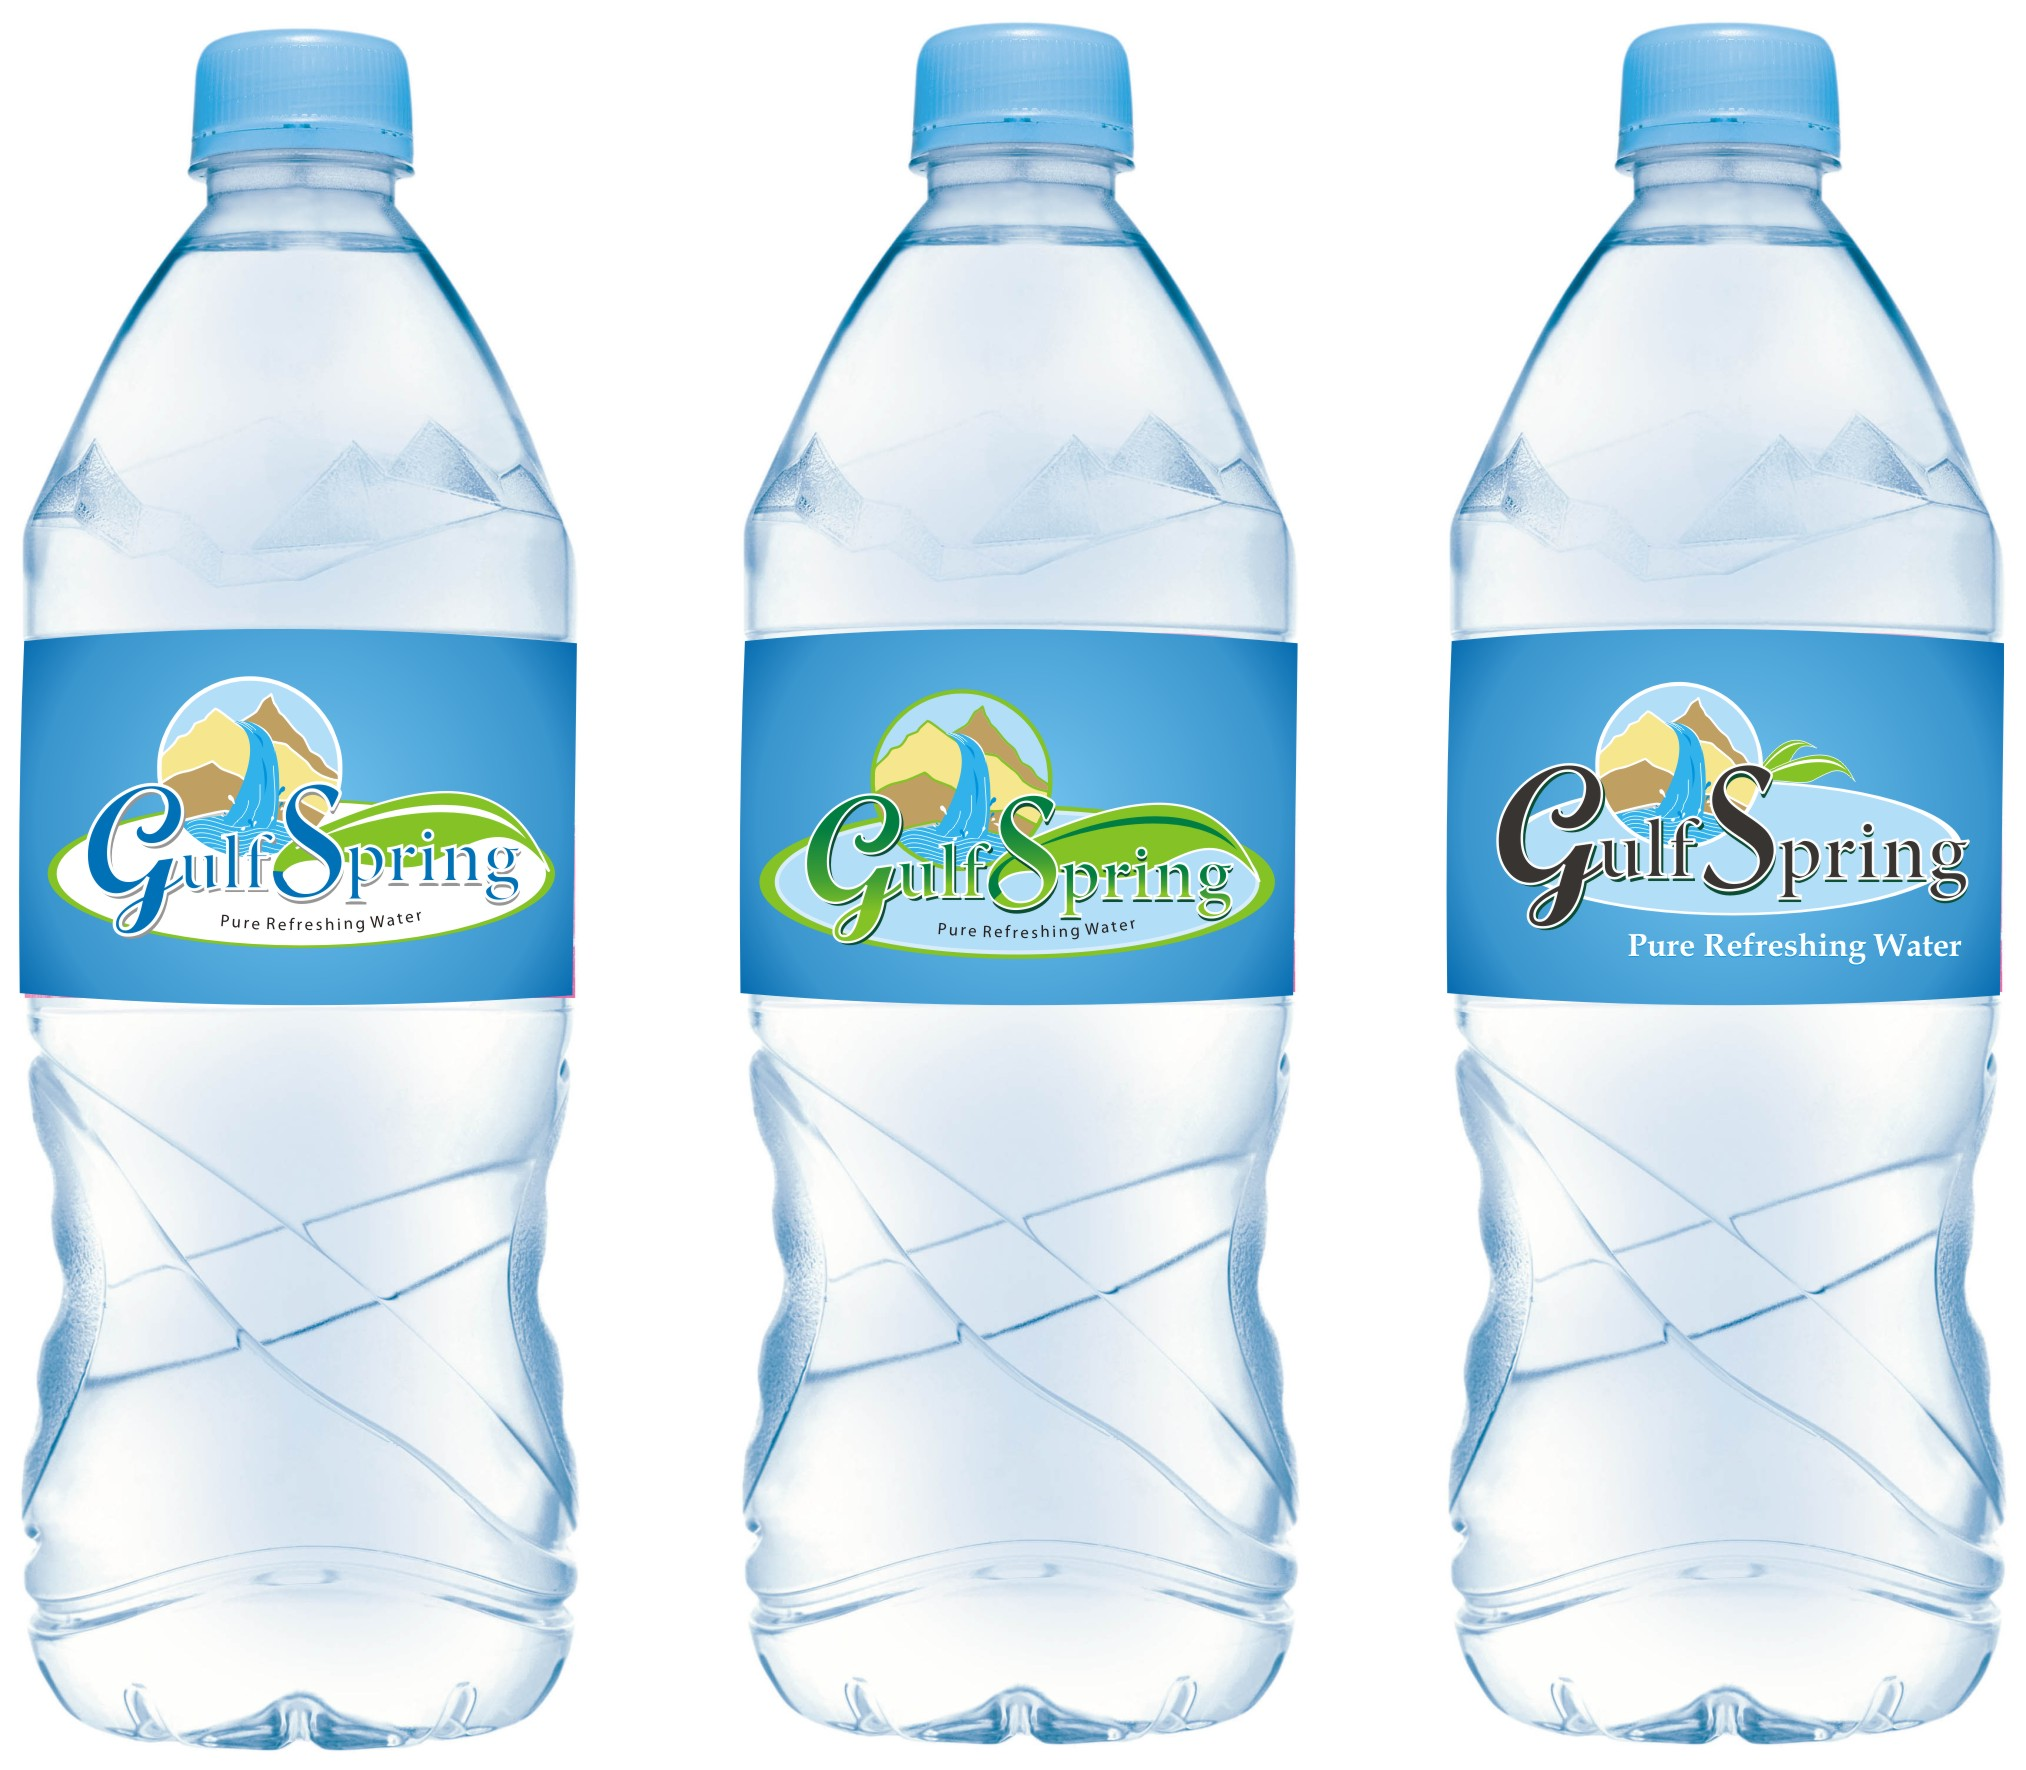 Logo Design by Mahida Kirit Chandrasinh - Entry No. 72 in the Logo Design Contest Inspiring Logo Design for Gulf Spring.